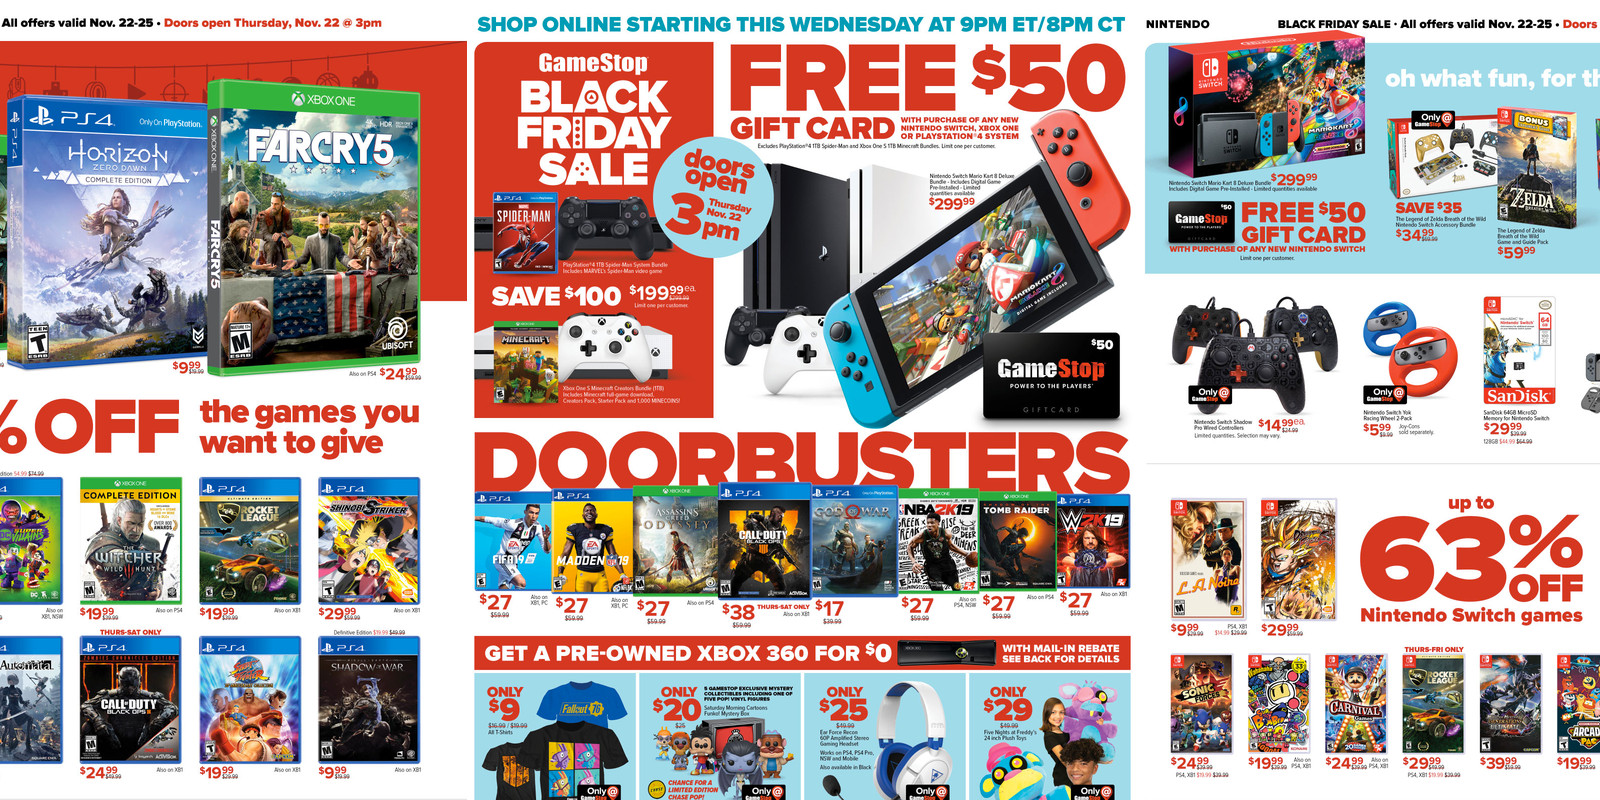 EB Games Black Friday deals, Sep 2020 | Product Reviews